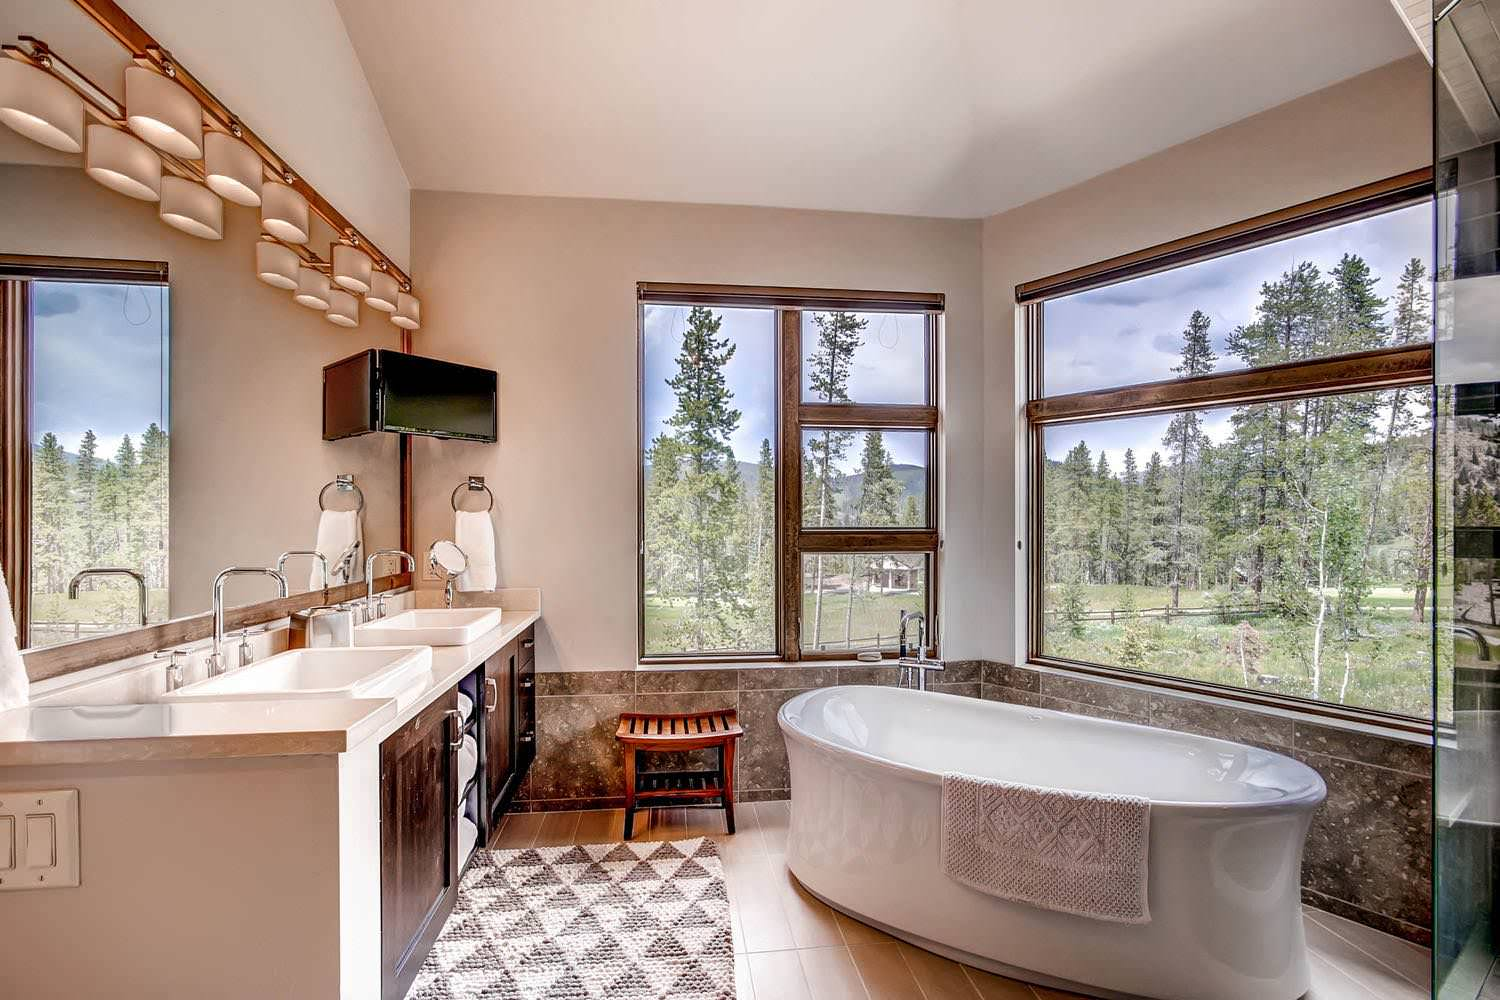 16 Fantastic Rustic Bathroom Designs That Will Take Your ... on Small:e_D8Ihxdoce= Restroom Ideas  id=50507